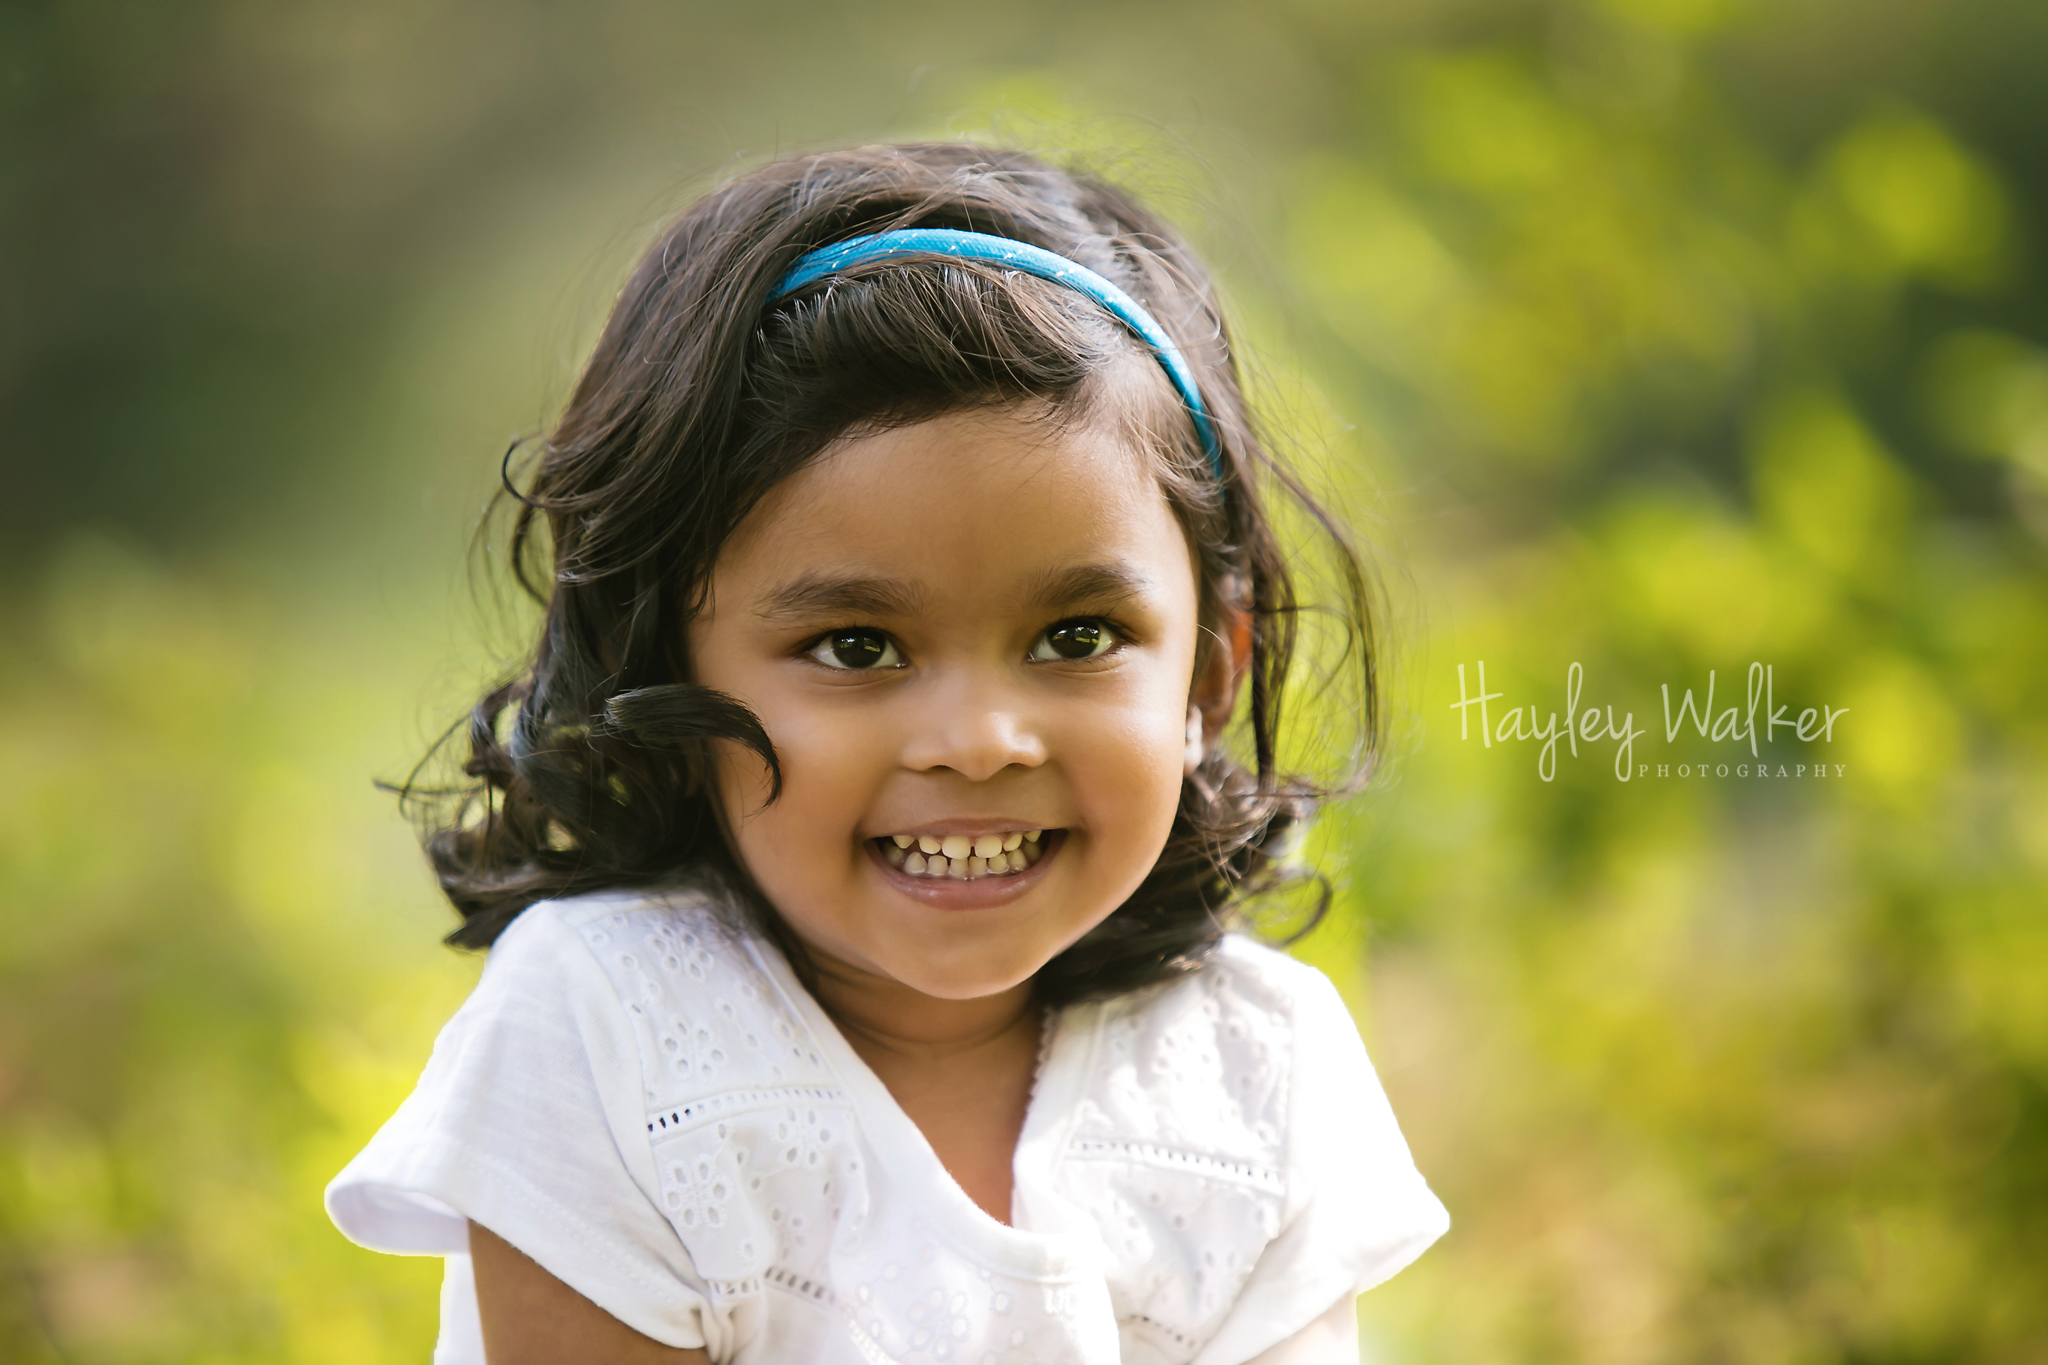 001-hayley-walker-photographer-hillcrest-durban-childphotographer-photographer